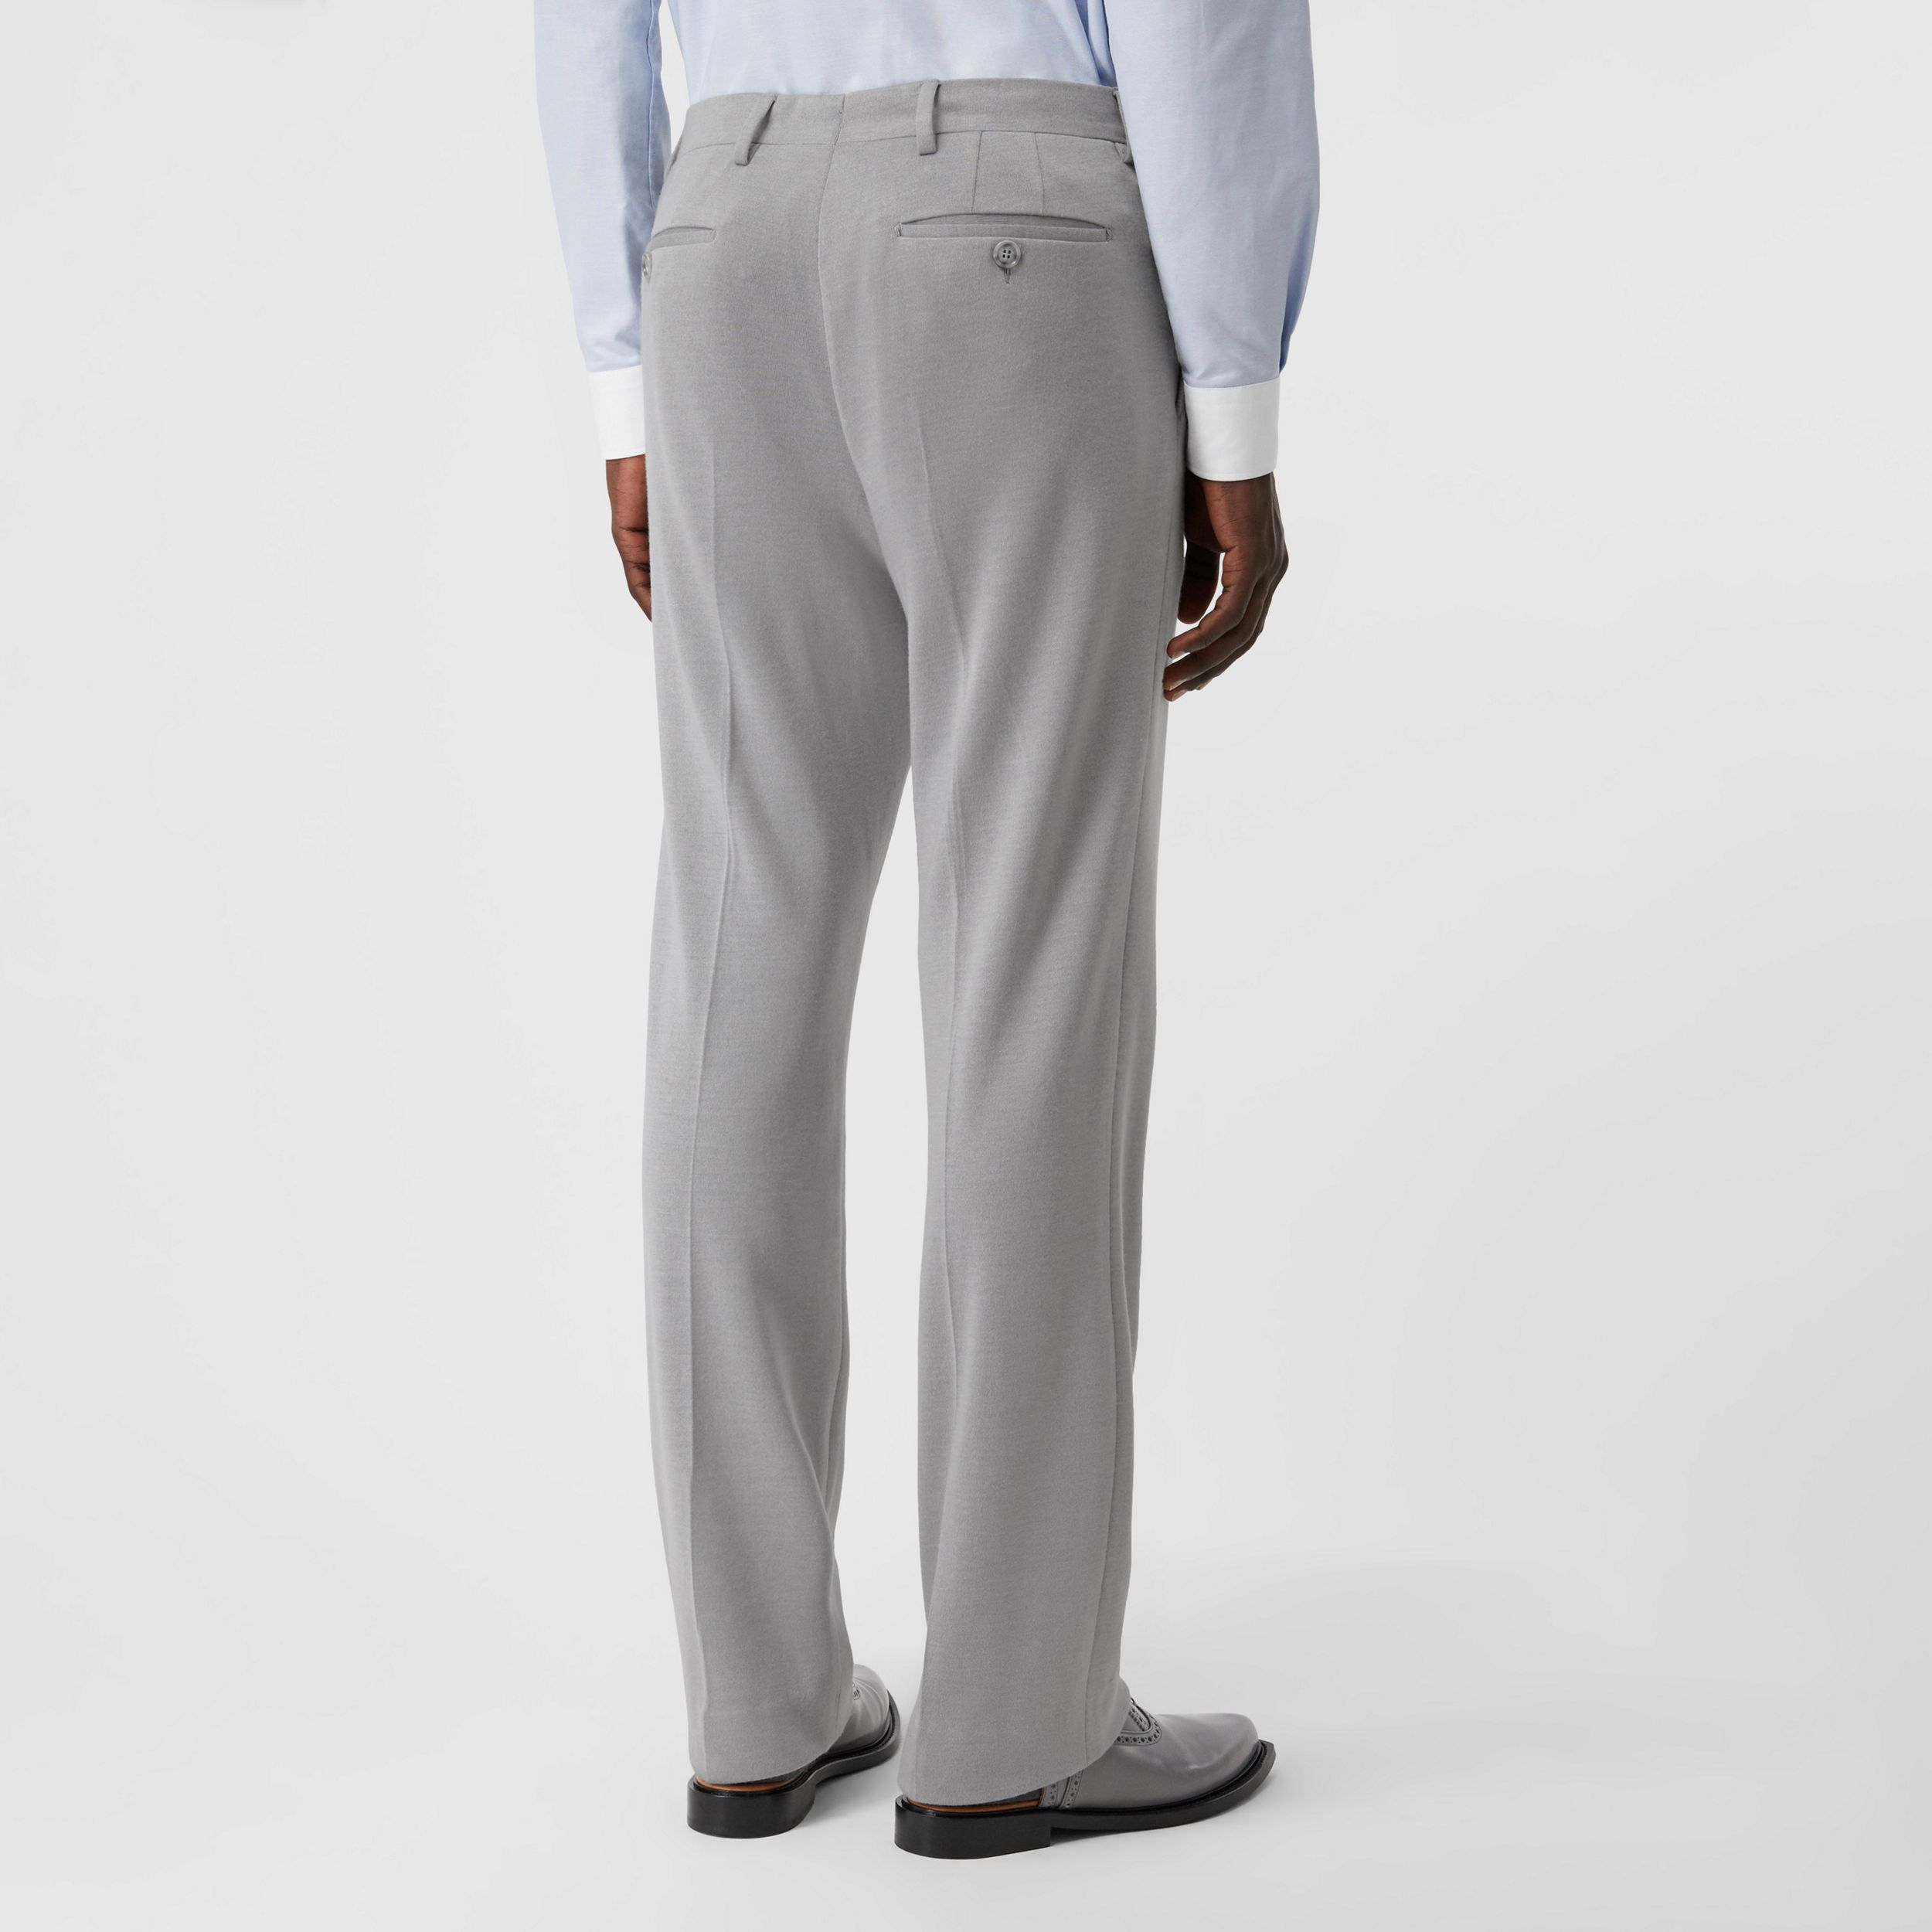 English Fit Cashmere Silk Jersey Tailored Trousers in Light Pebble Grey - Men | Burberry - 3